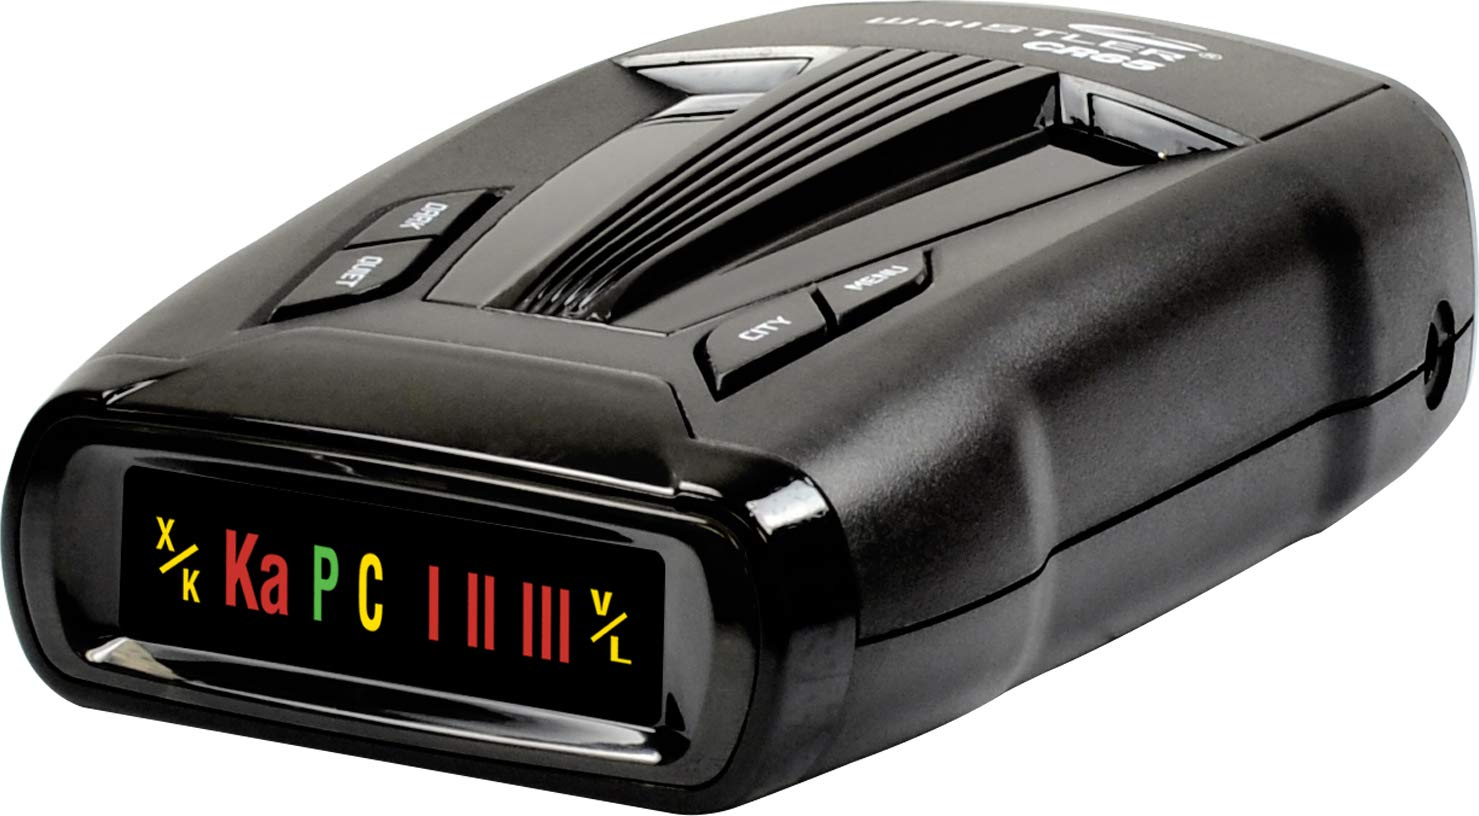 360 Degree Protection and Tone Alerts Whistler CR68 High Performance Laser Radar Detector